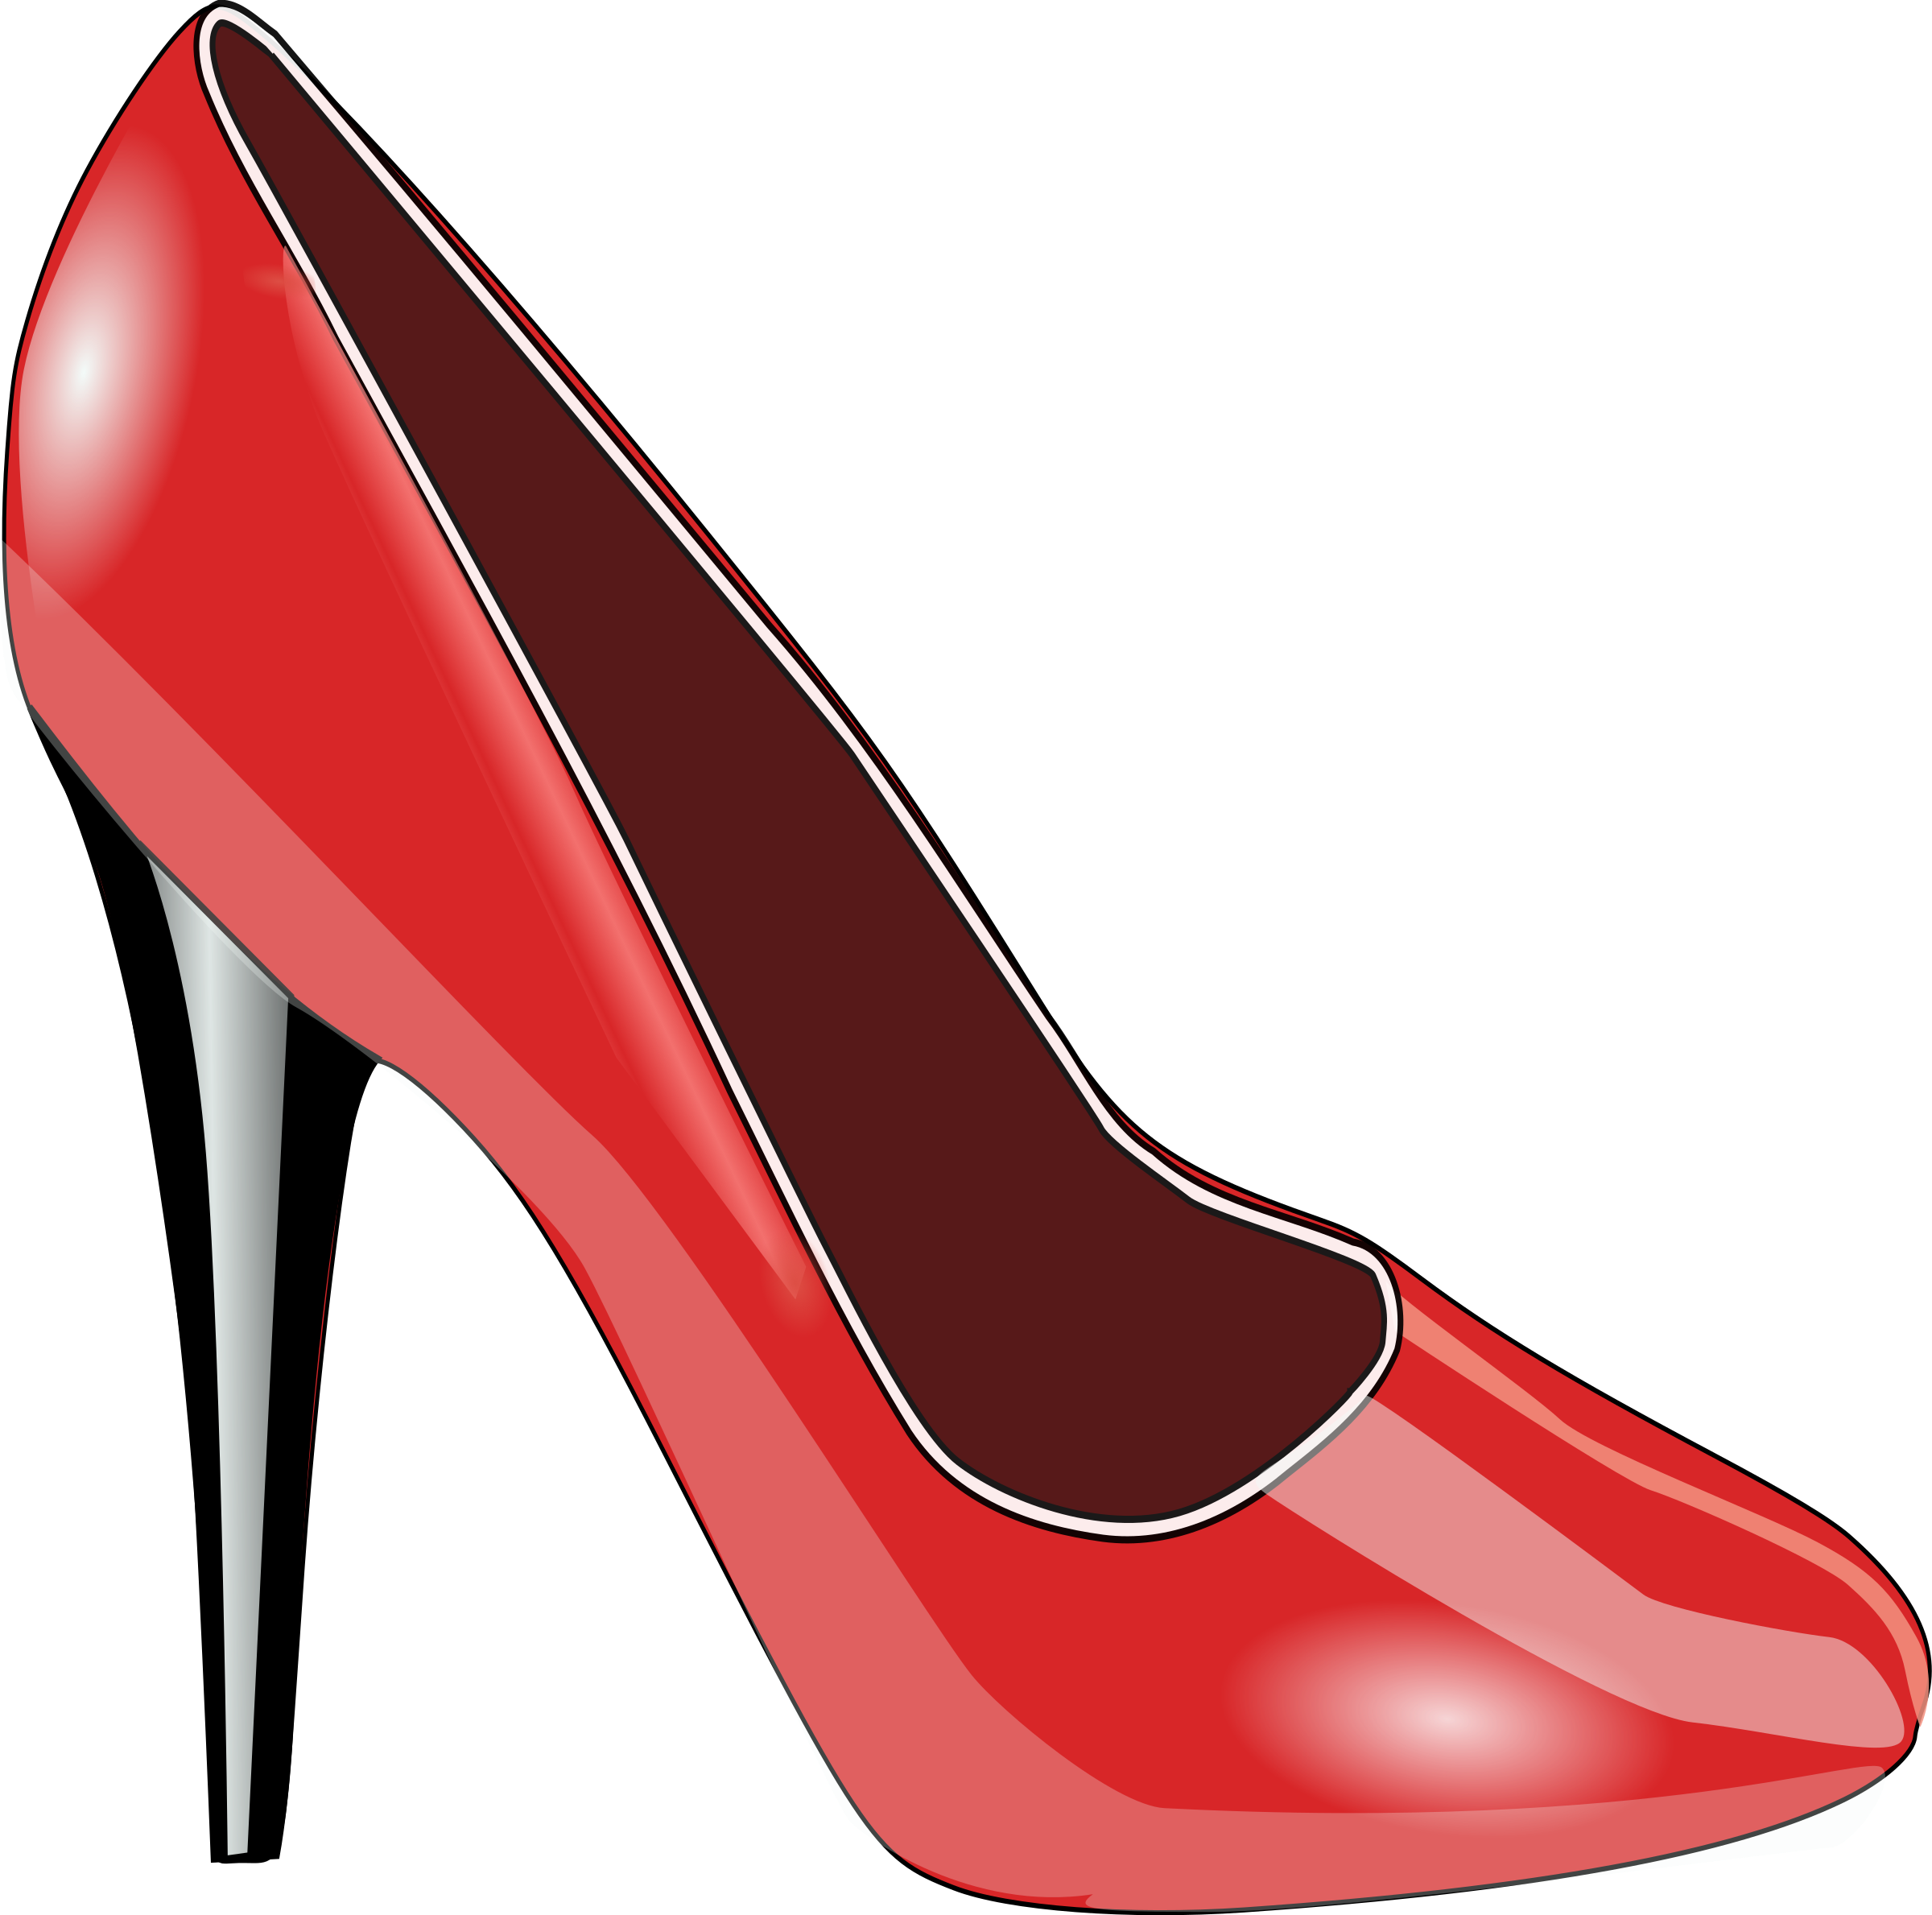 Red Shoe by TheresaKnott